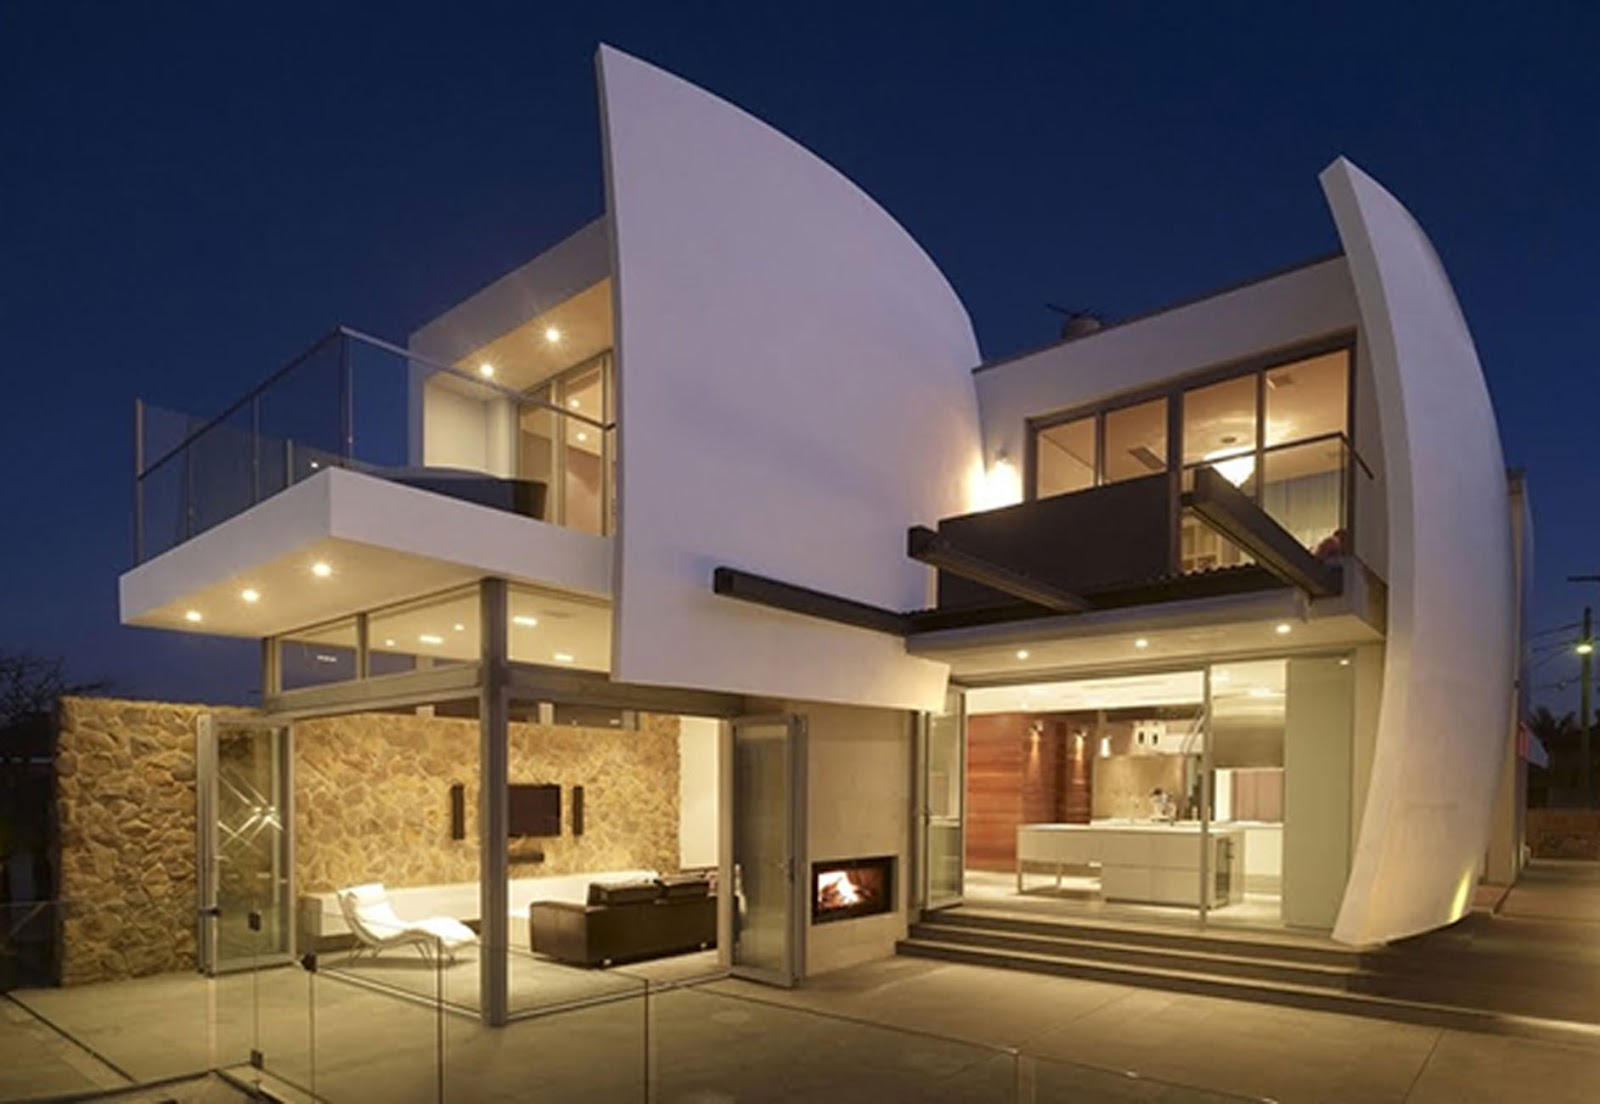 Luxurious-Home-Design-with-Futuristic-Architecture-in-Australia.jpg